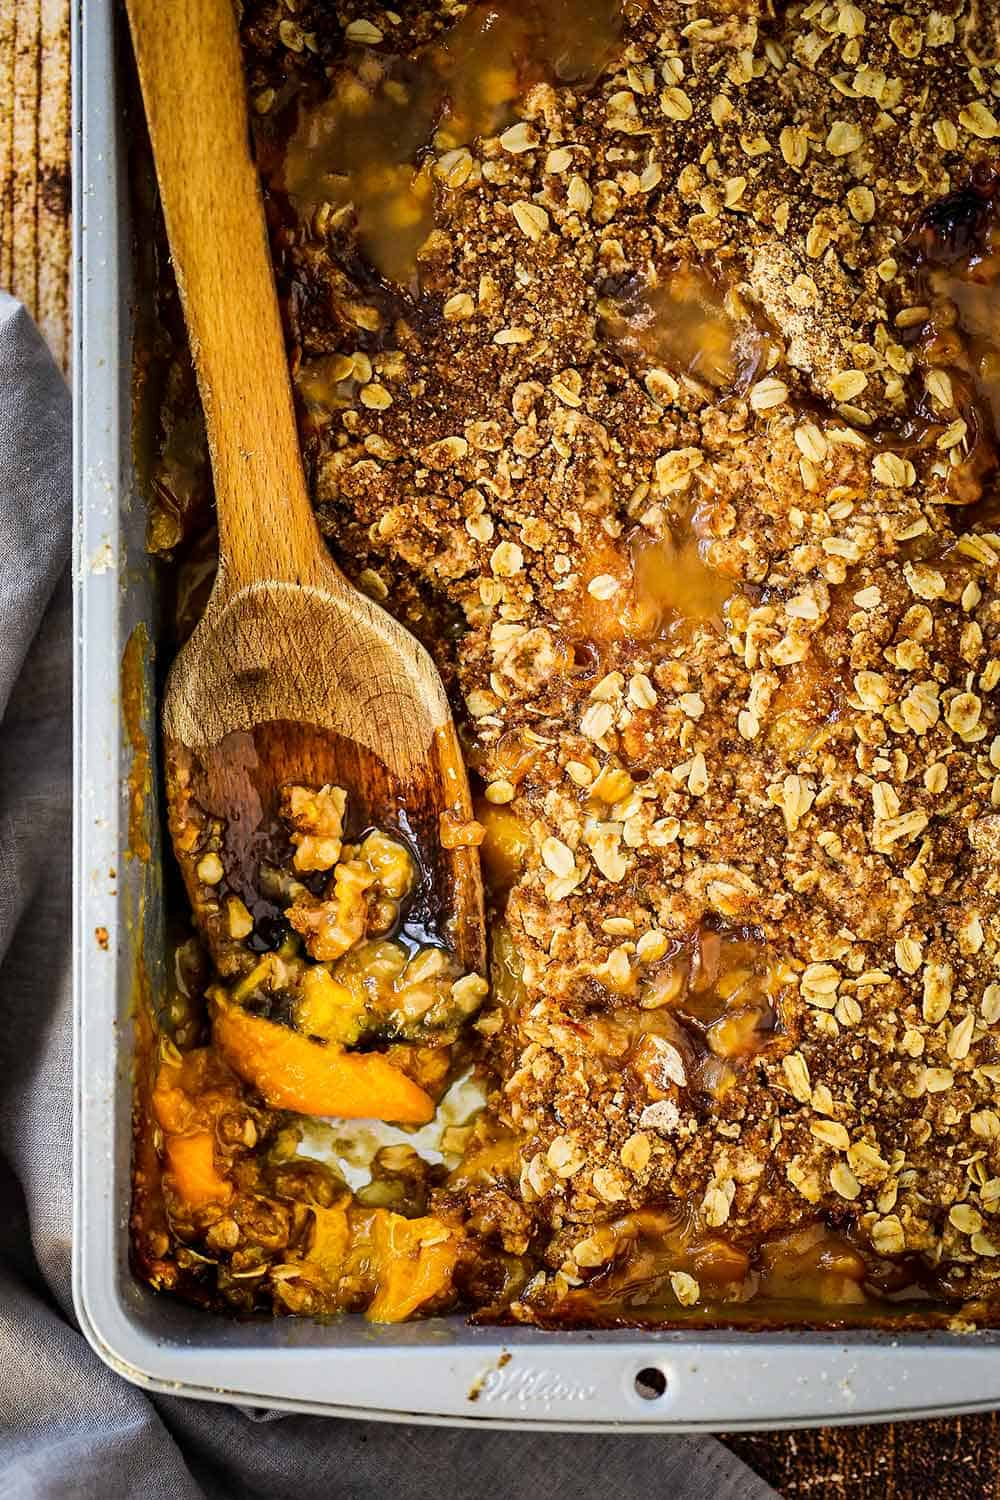 A silver baking pan filled with fully baked peach crisp with a wooden spoon inserted in the side.